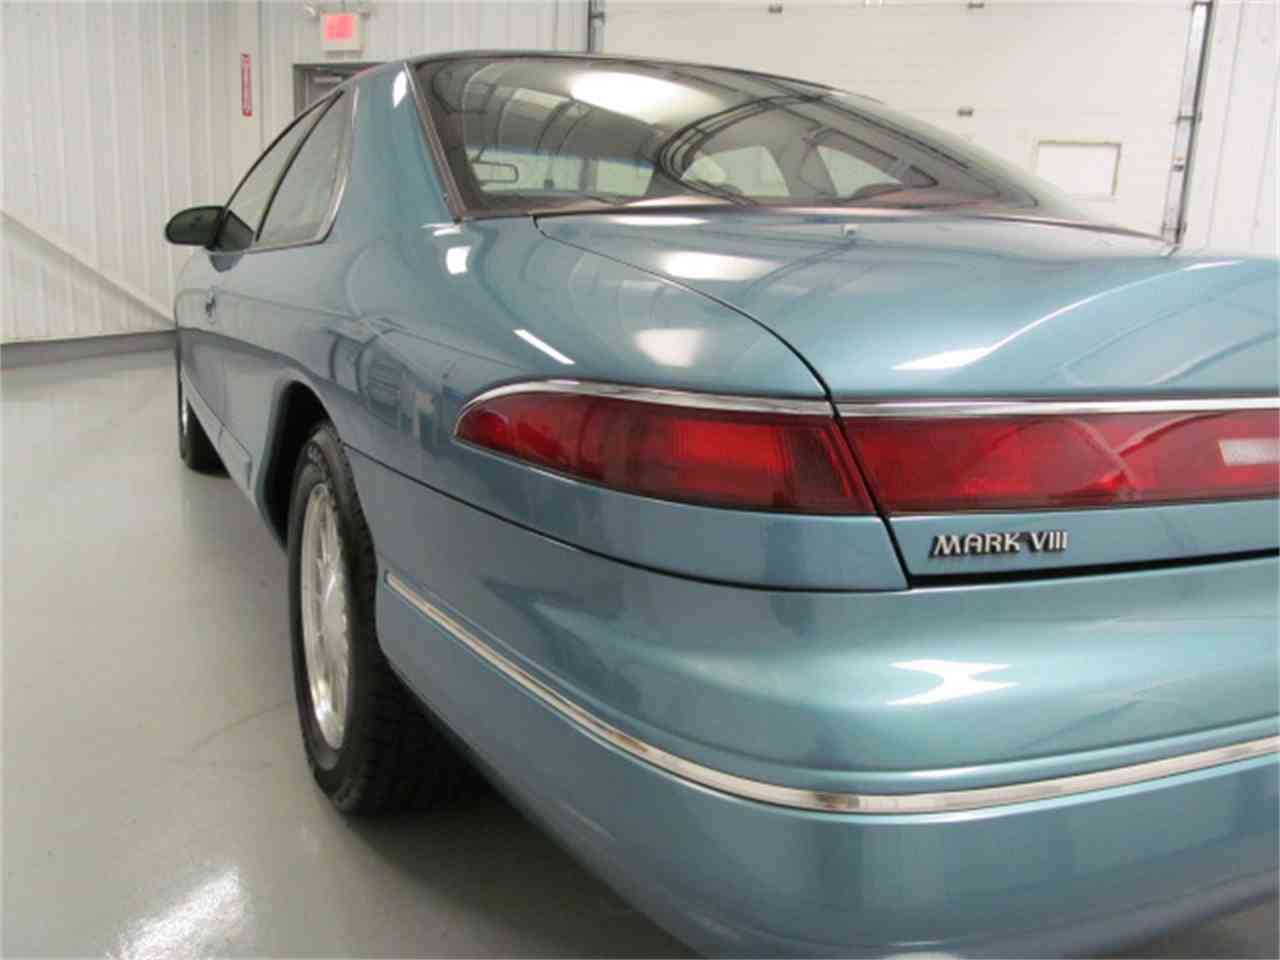 Large Picture of '93 Lincoln Mark VIII located in Christiansburg Virginia - $9,900.00 - JL9Z